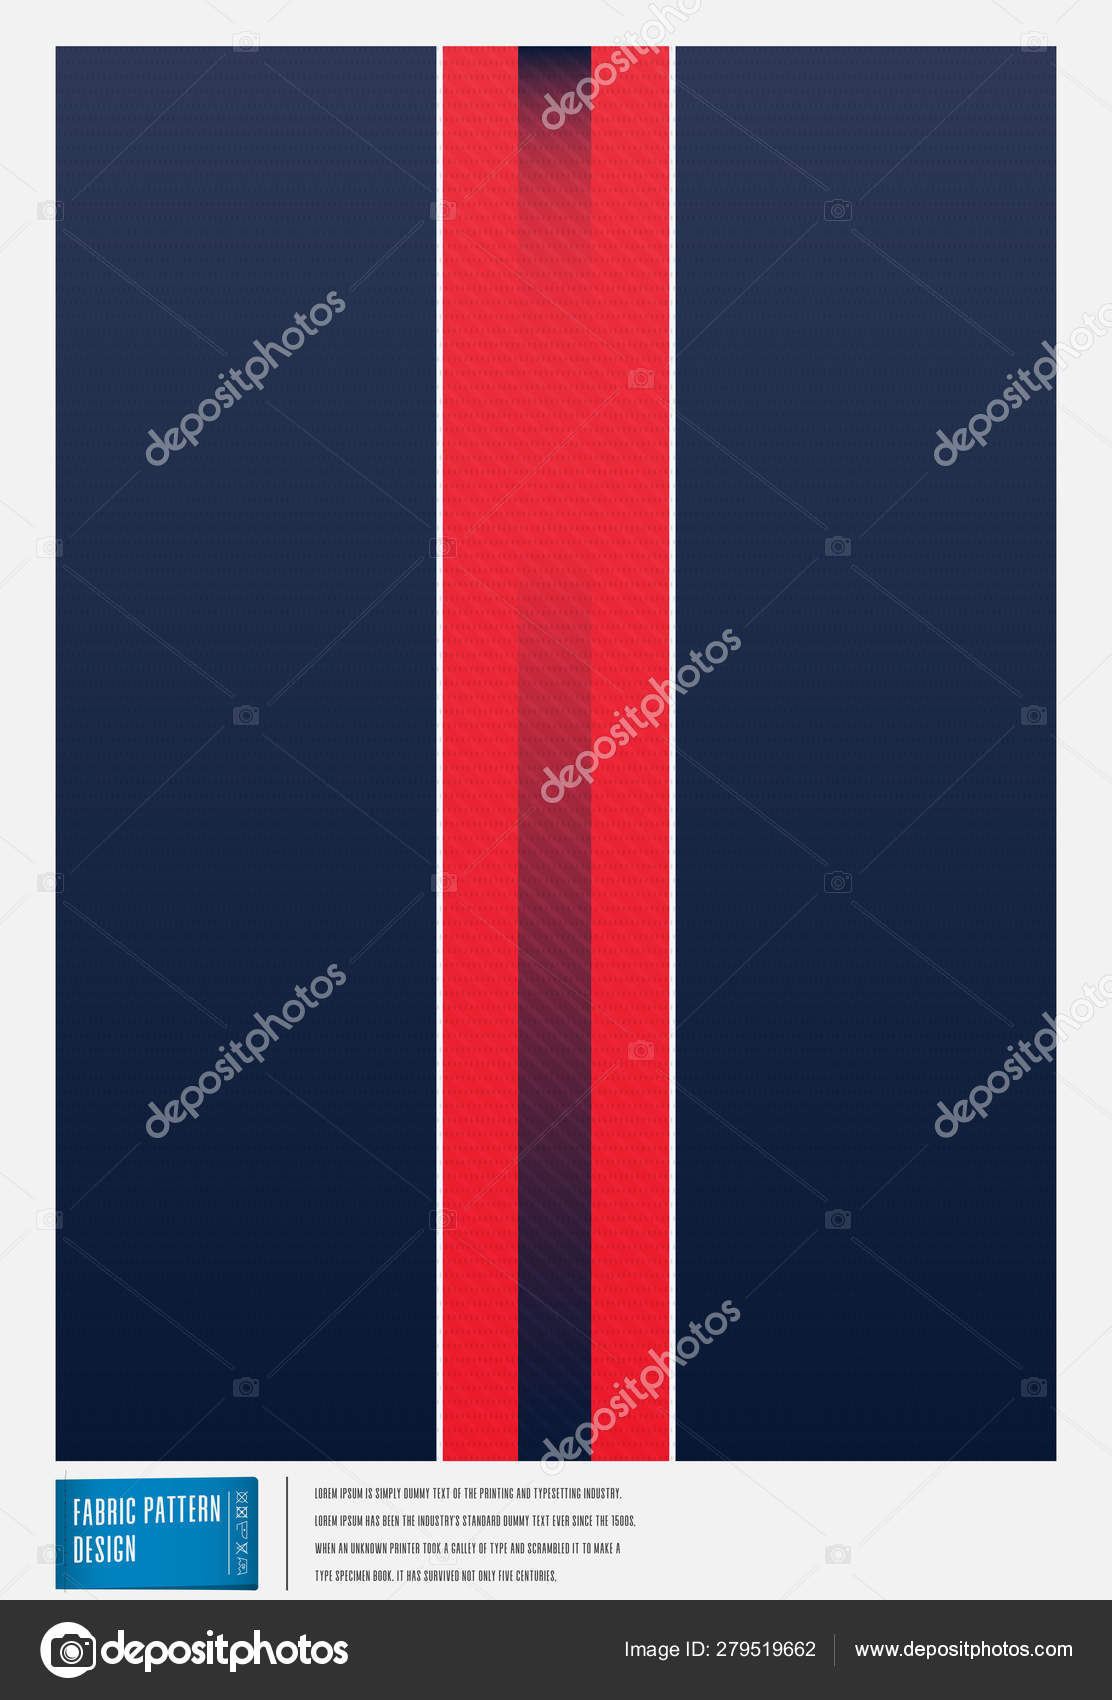 Jersey Texture 019 — Stock Vector © tond ruangwit@gmail com